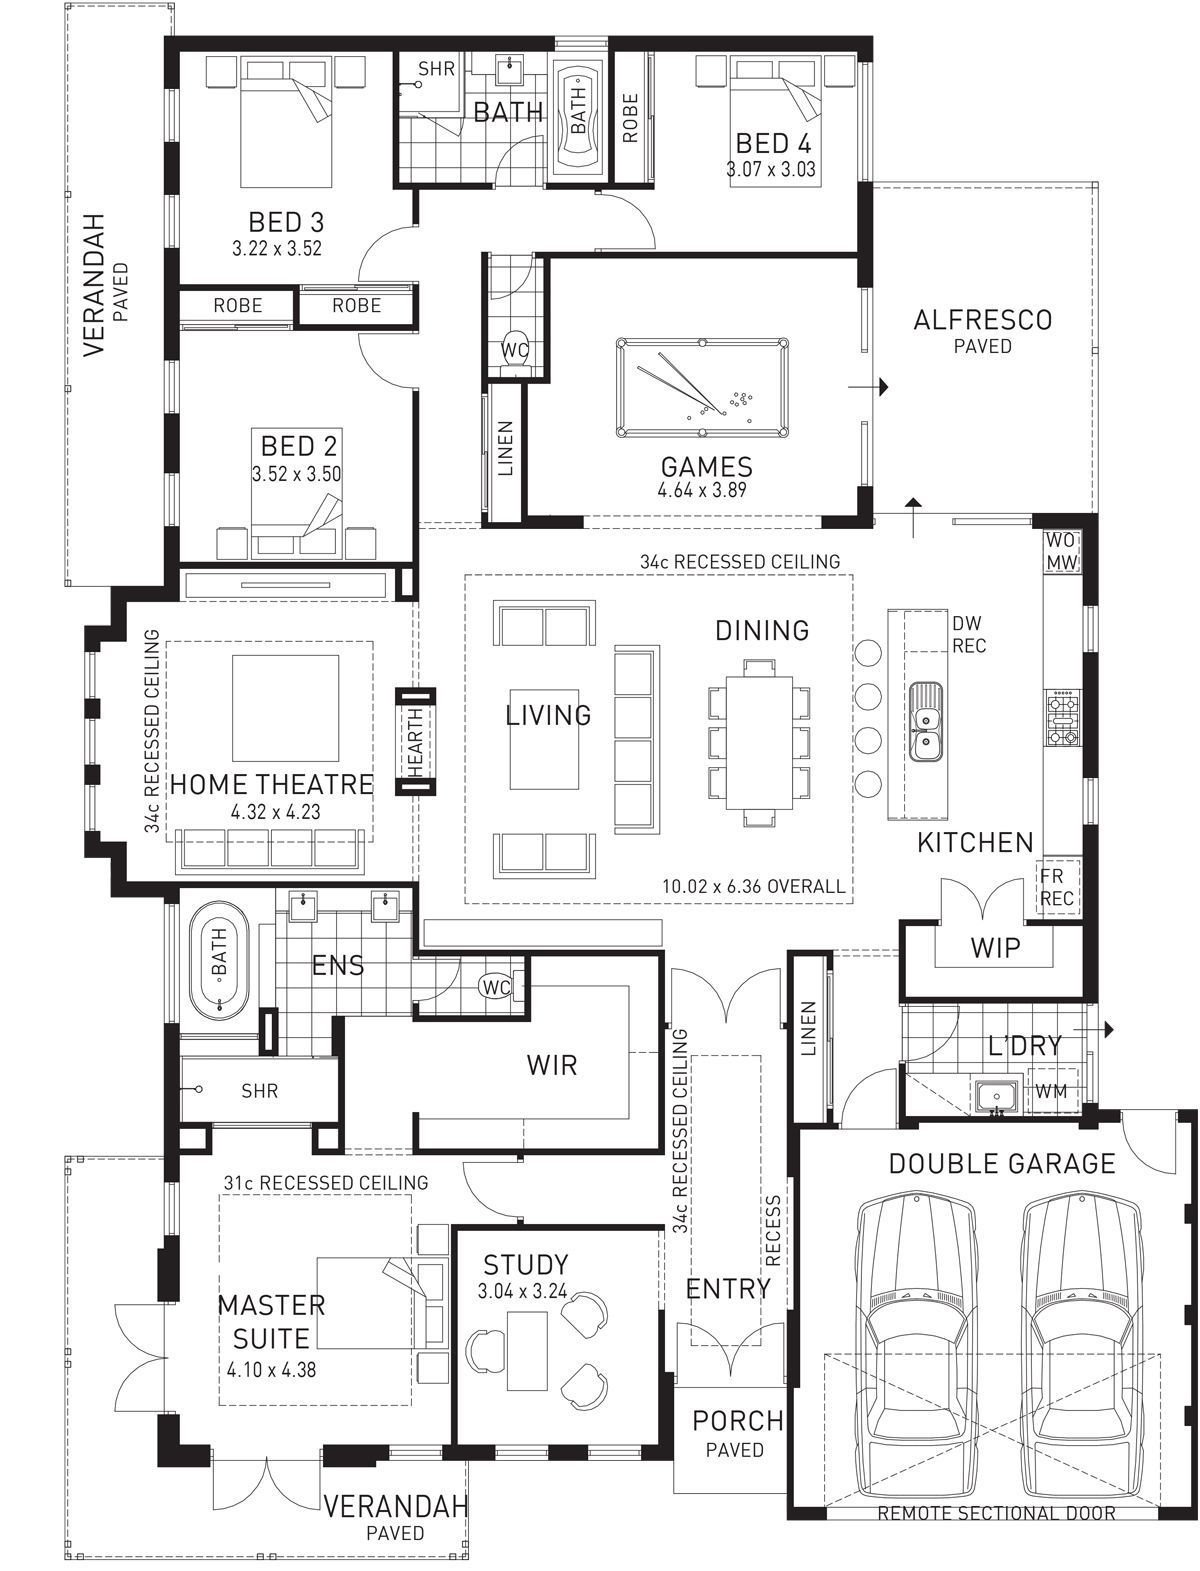 Chittering Lodge Display Series Sovereign Specification Plunkett Homes Wa Chittering L Plan De Maison Familiale Plan Maison Plan Maison Architecte